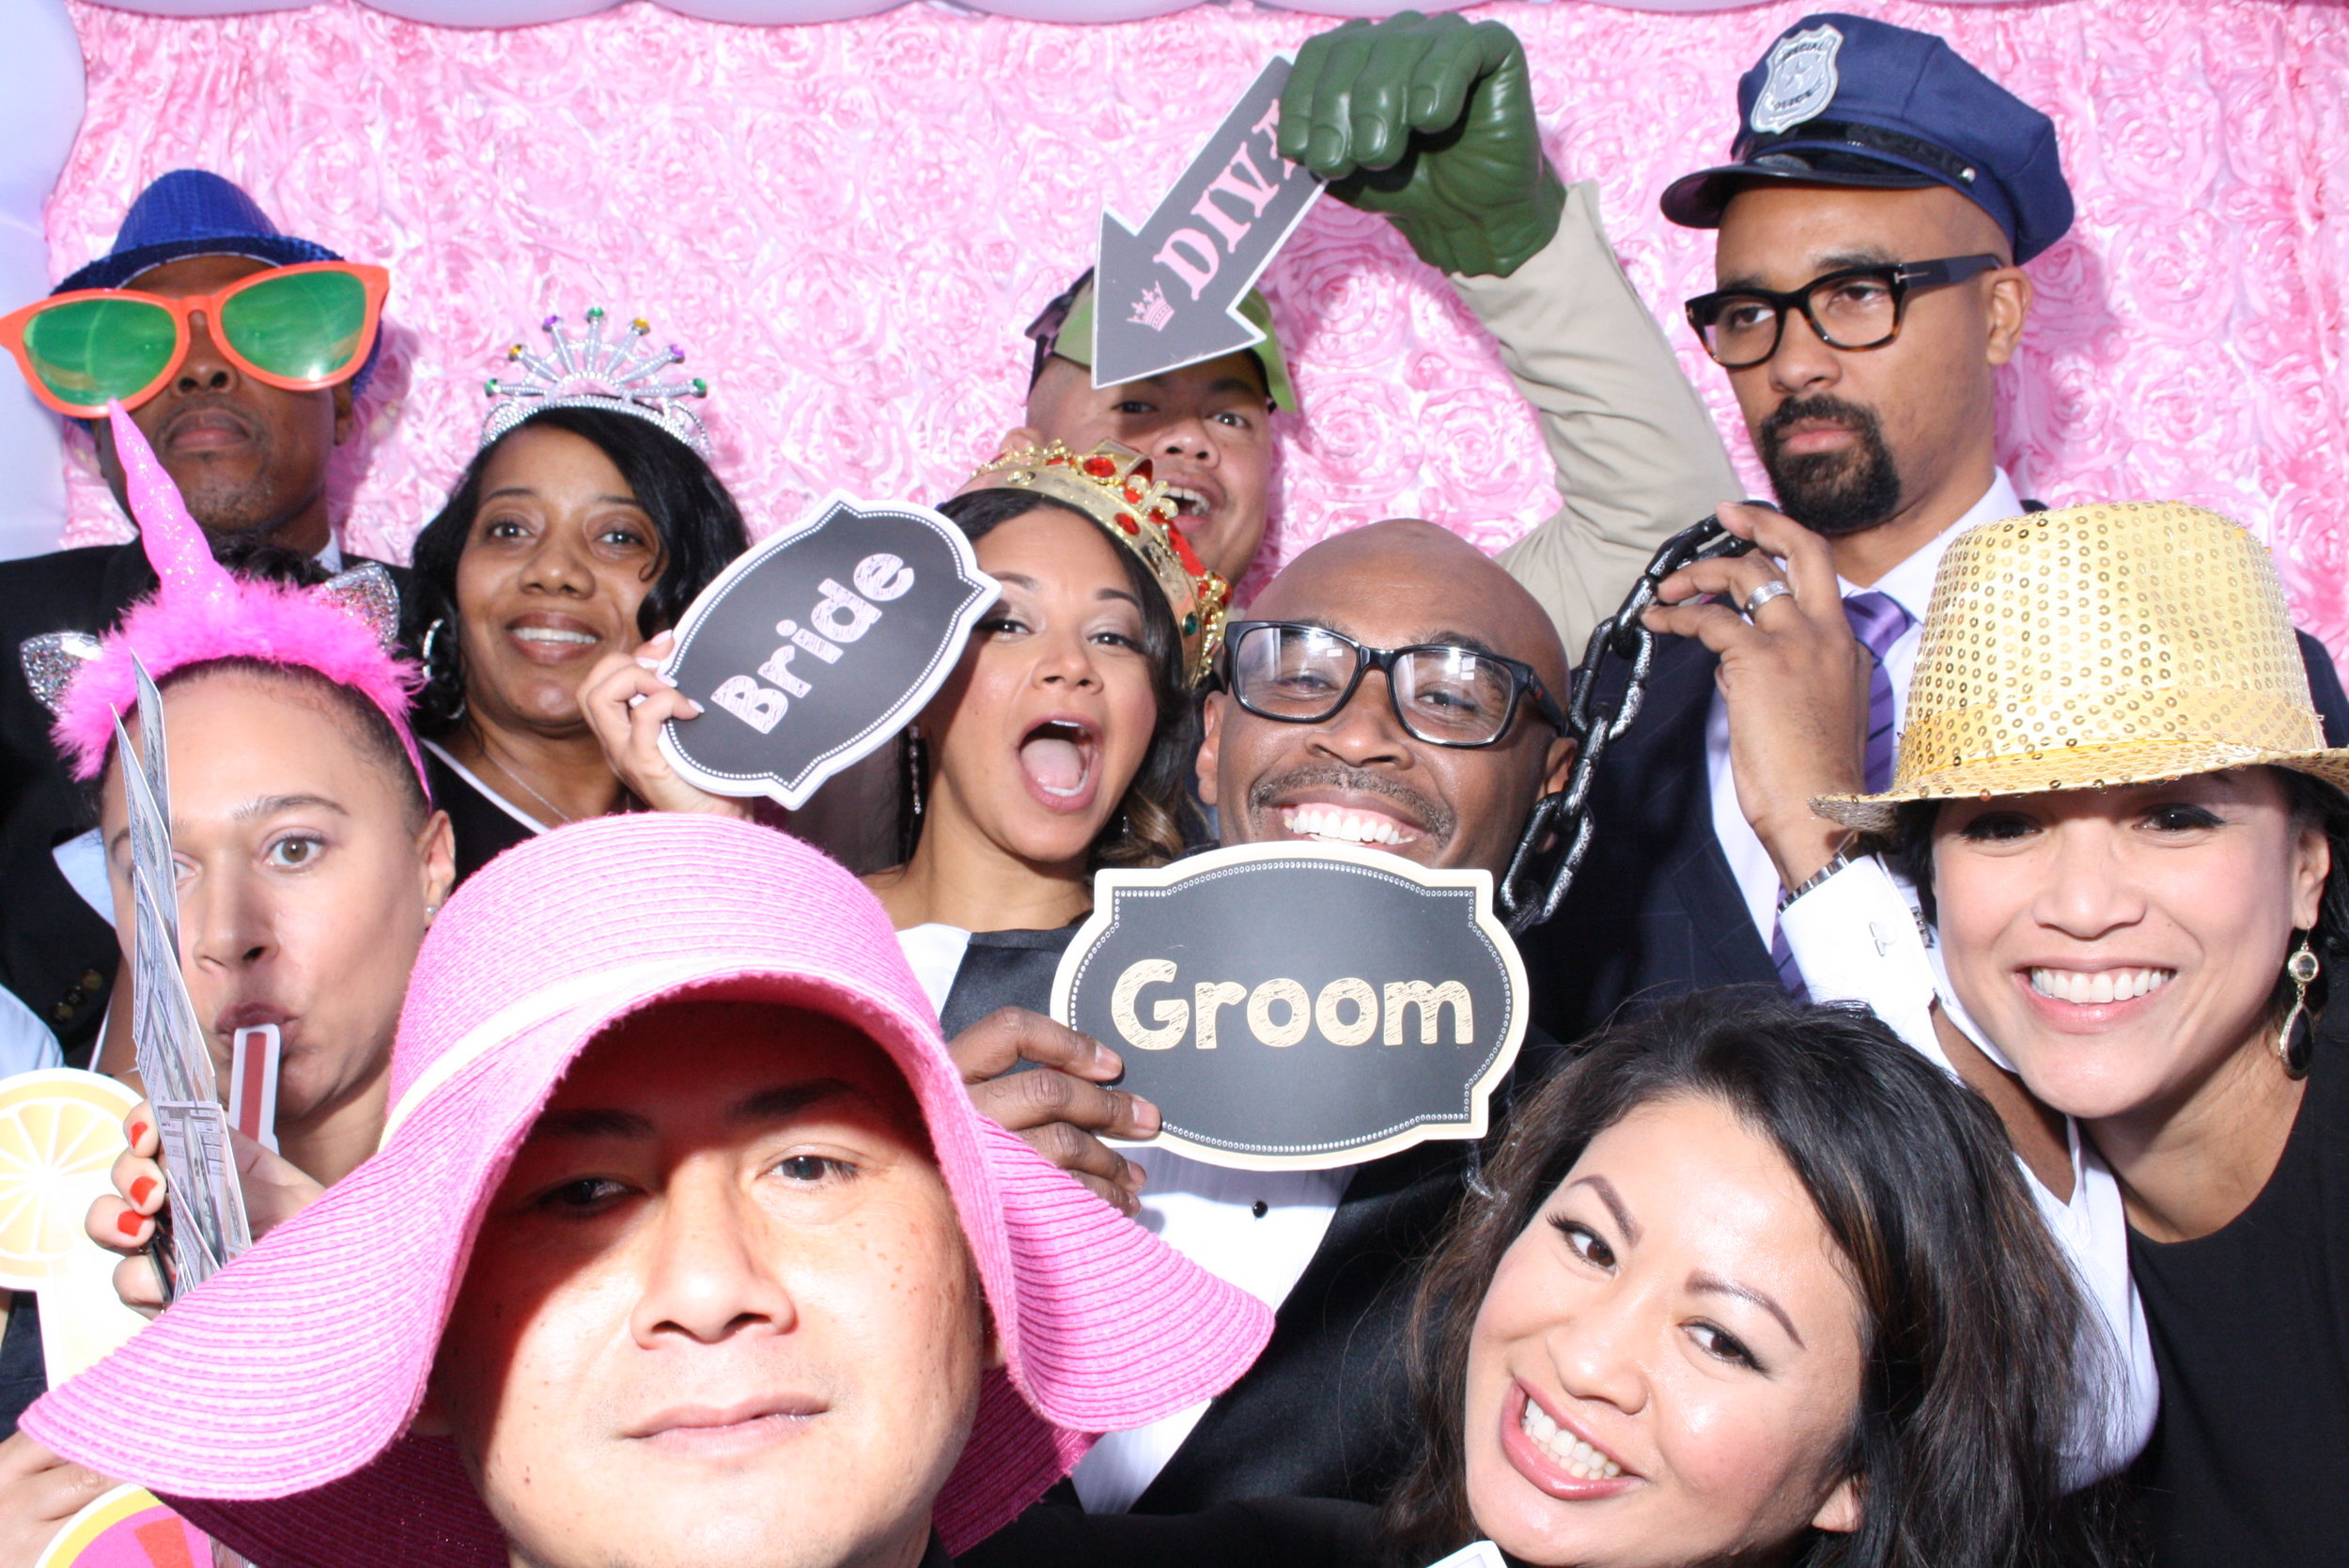 Photo Booth - There is nothing better than to capture fun moments at an event with memorable pictures. Our photo booth ensures you will get great fun photos to take with you forever. Our open booth, green screen, and/or special white cloud booth will be the talk of your party. Book with us today!